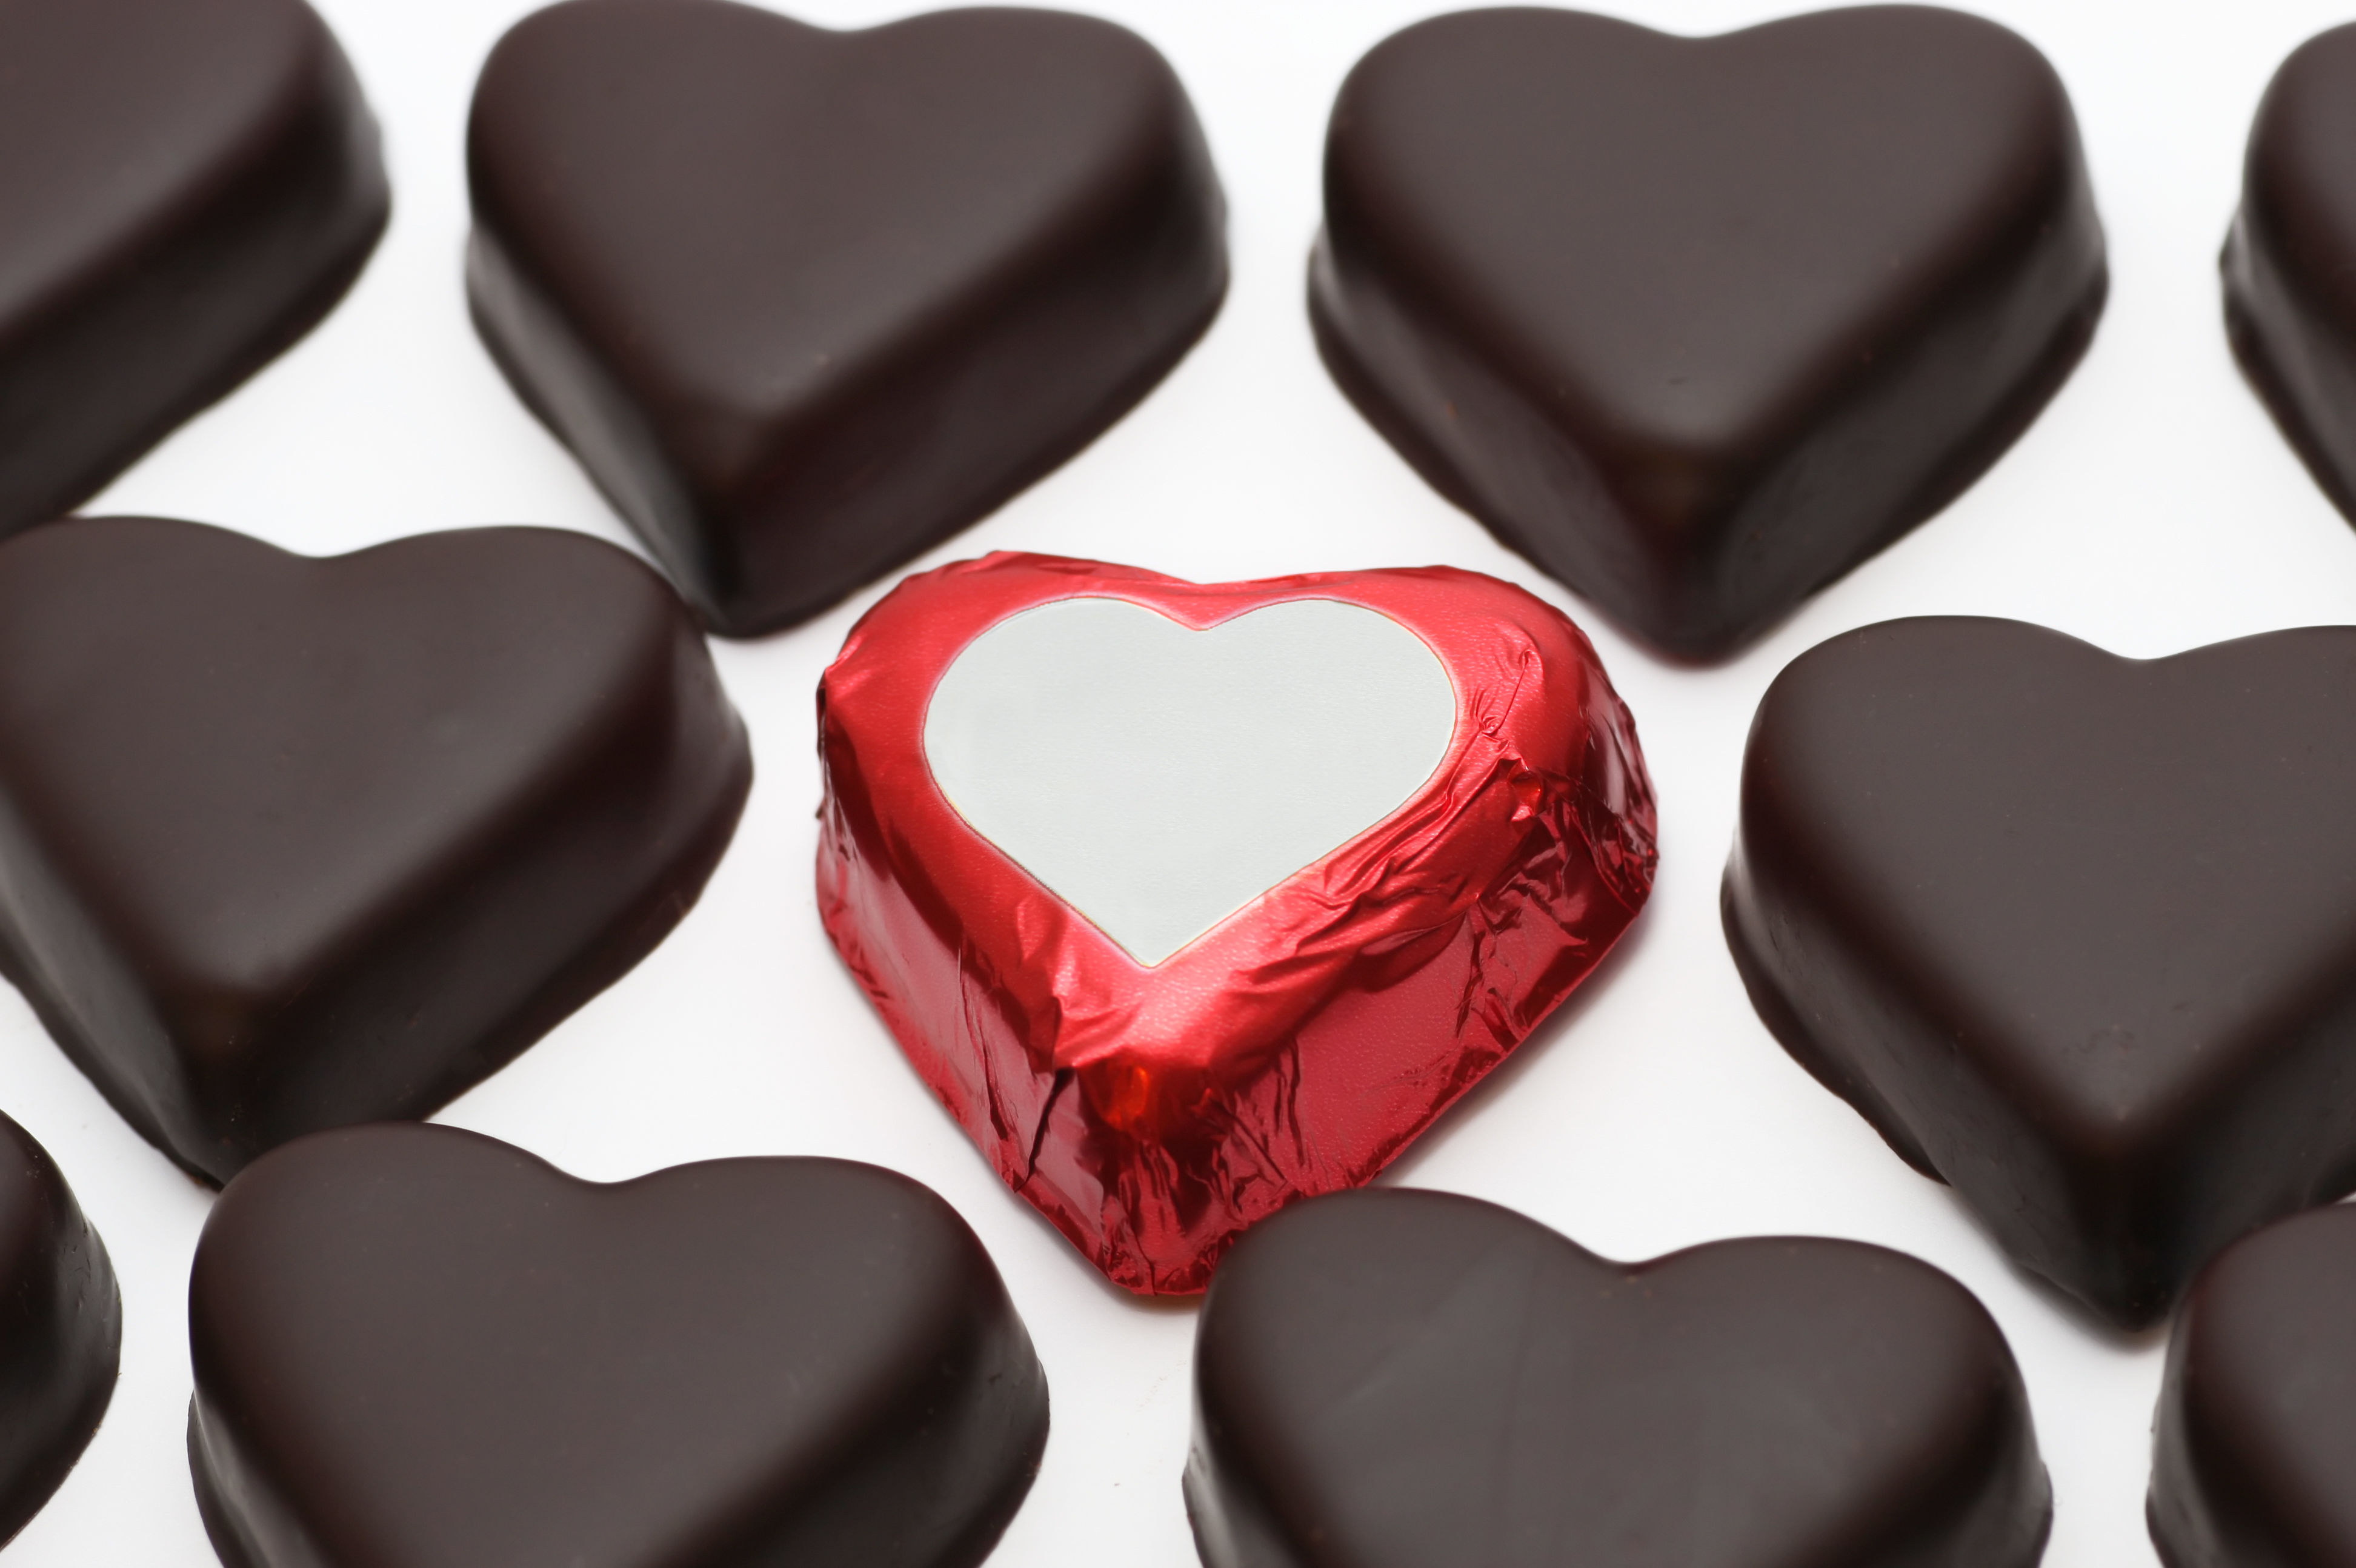 How Dark Chocolate Benefits Your Heart, According to Research